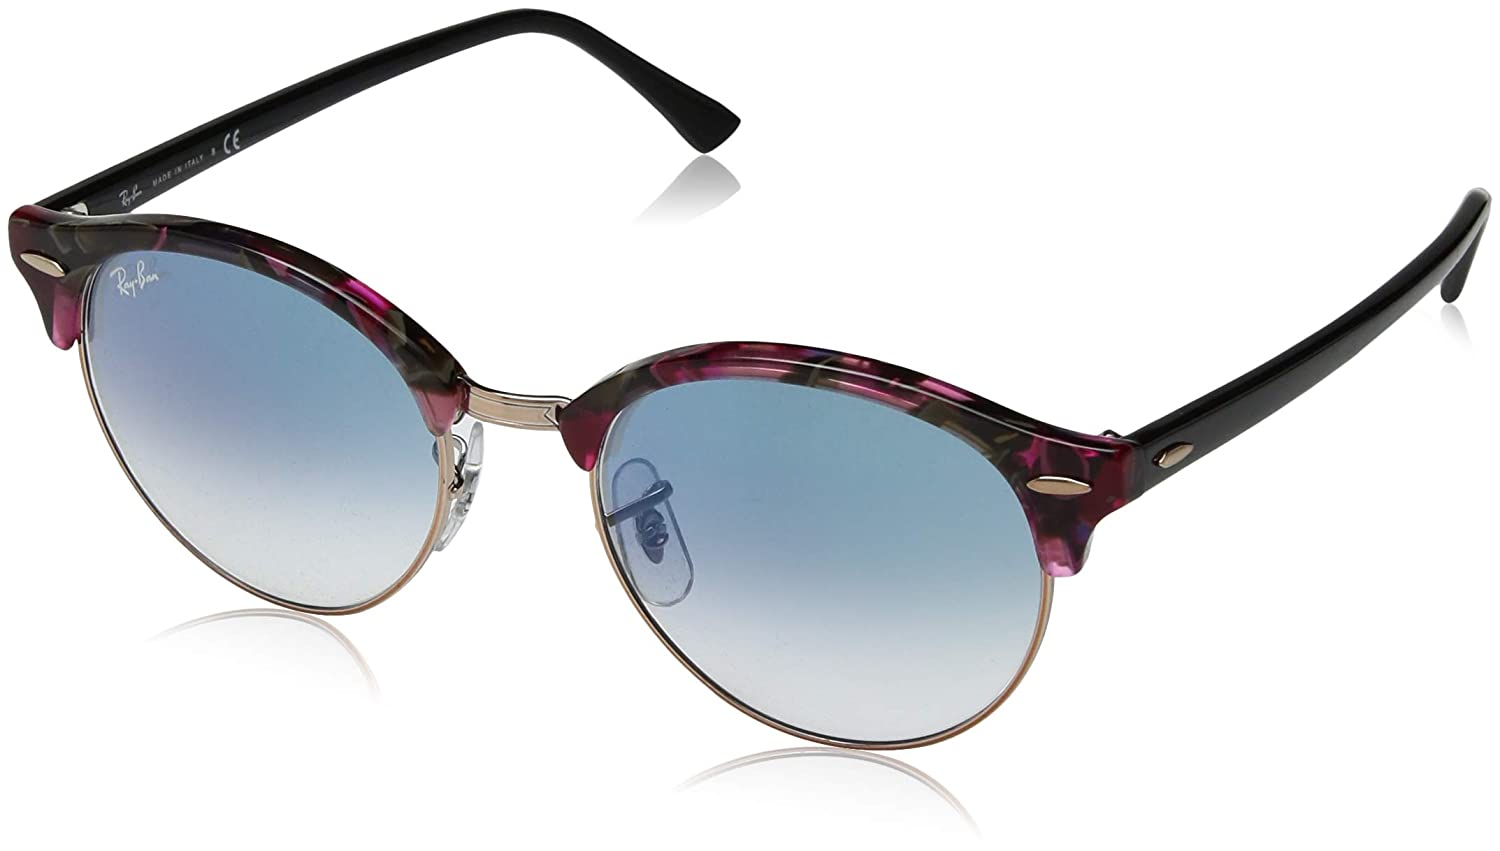 b03aff26ae29 Amazon.com: Ray-Ban Clubround Round Sunglasses, Spotted Grey/Violet, 53.8  mm: Clothing